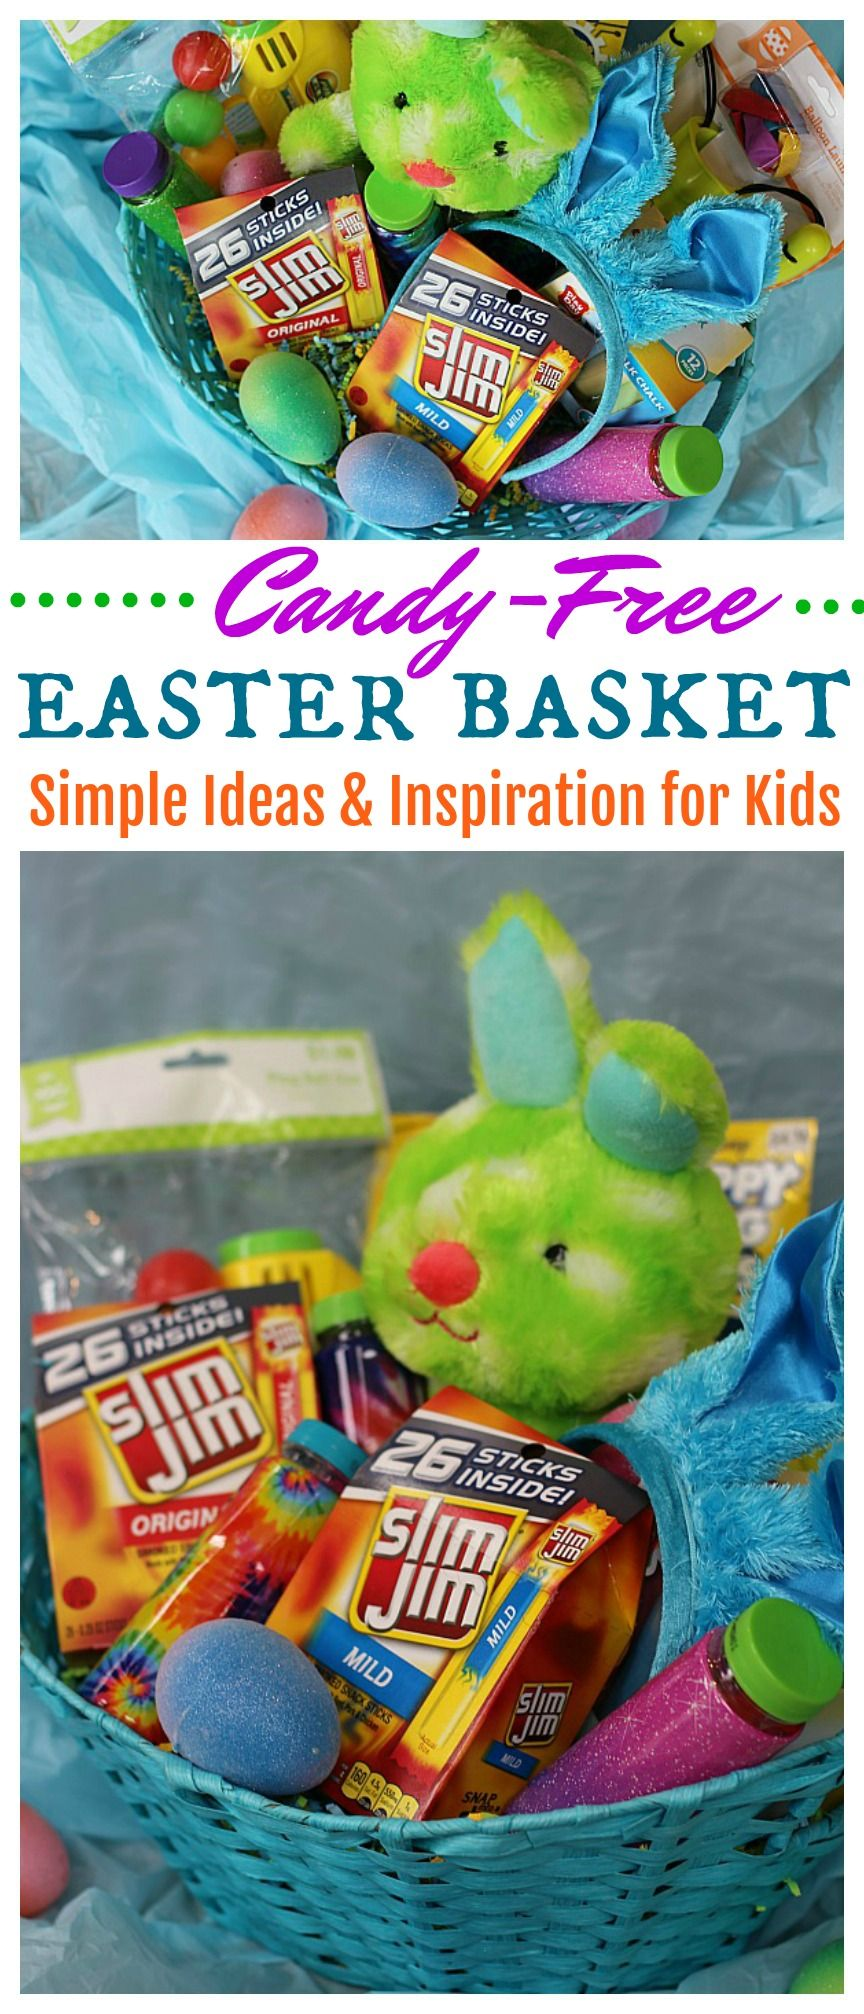 Are you looking for the perfect easter basket ideas why not go are you looking for the perfect easter basket ideas why not go candy free with slim jim from walmart once youve created your perfect candy free easter negle Image collections